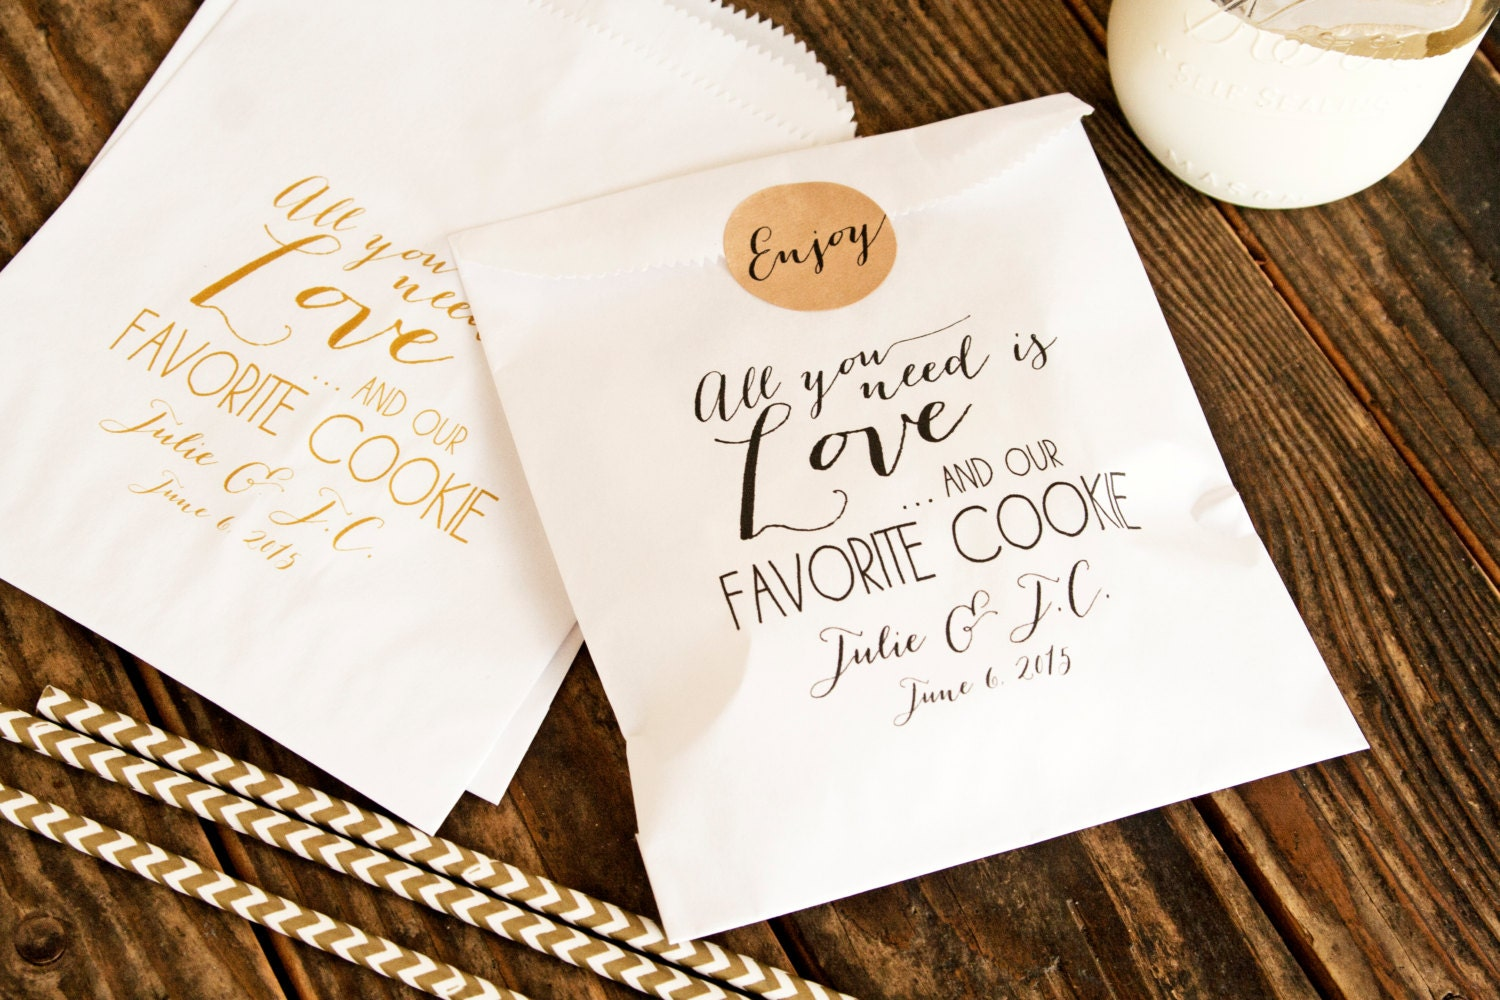 Cookie favor bags wedding favor bags love and our favorite for Cookie bags for wedding